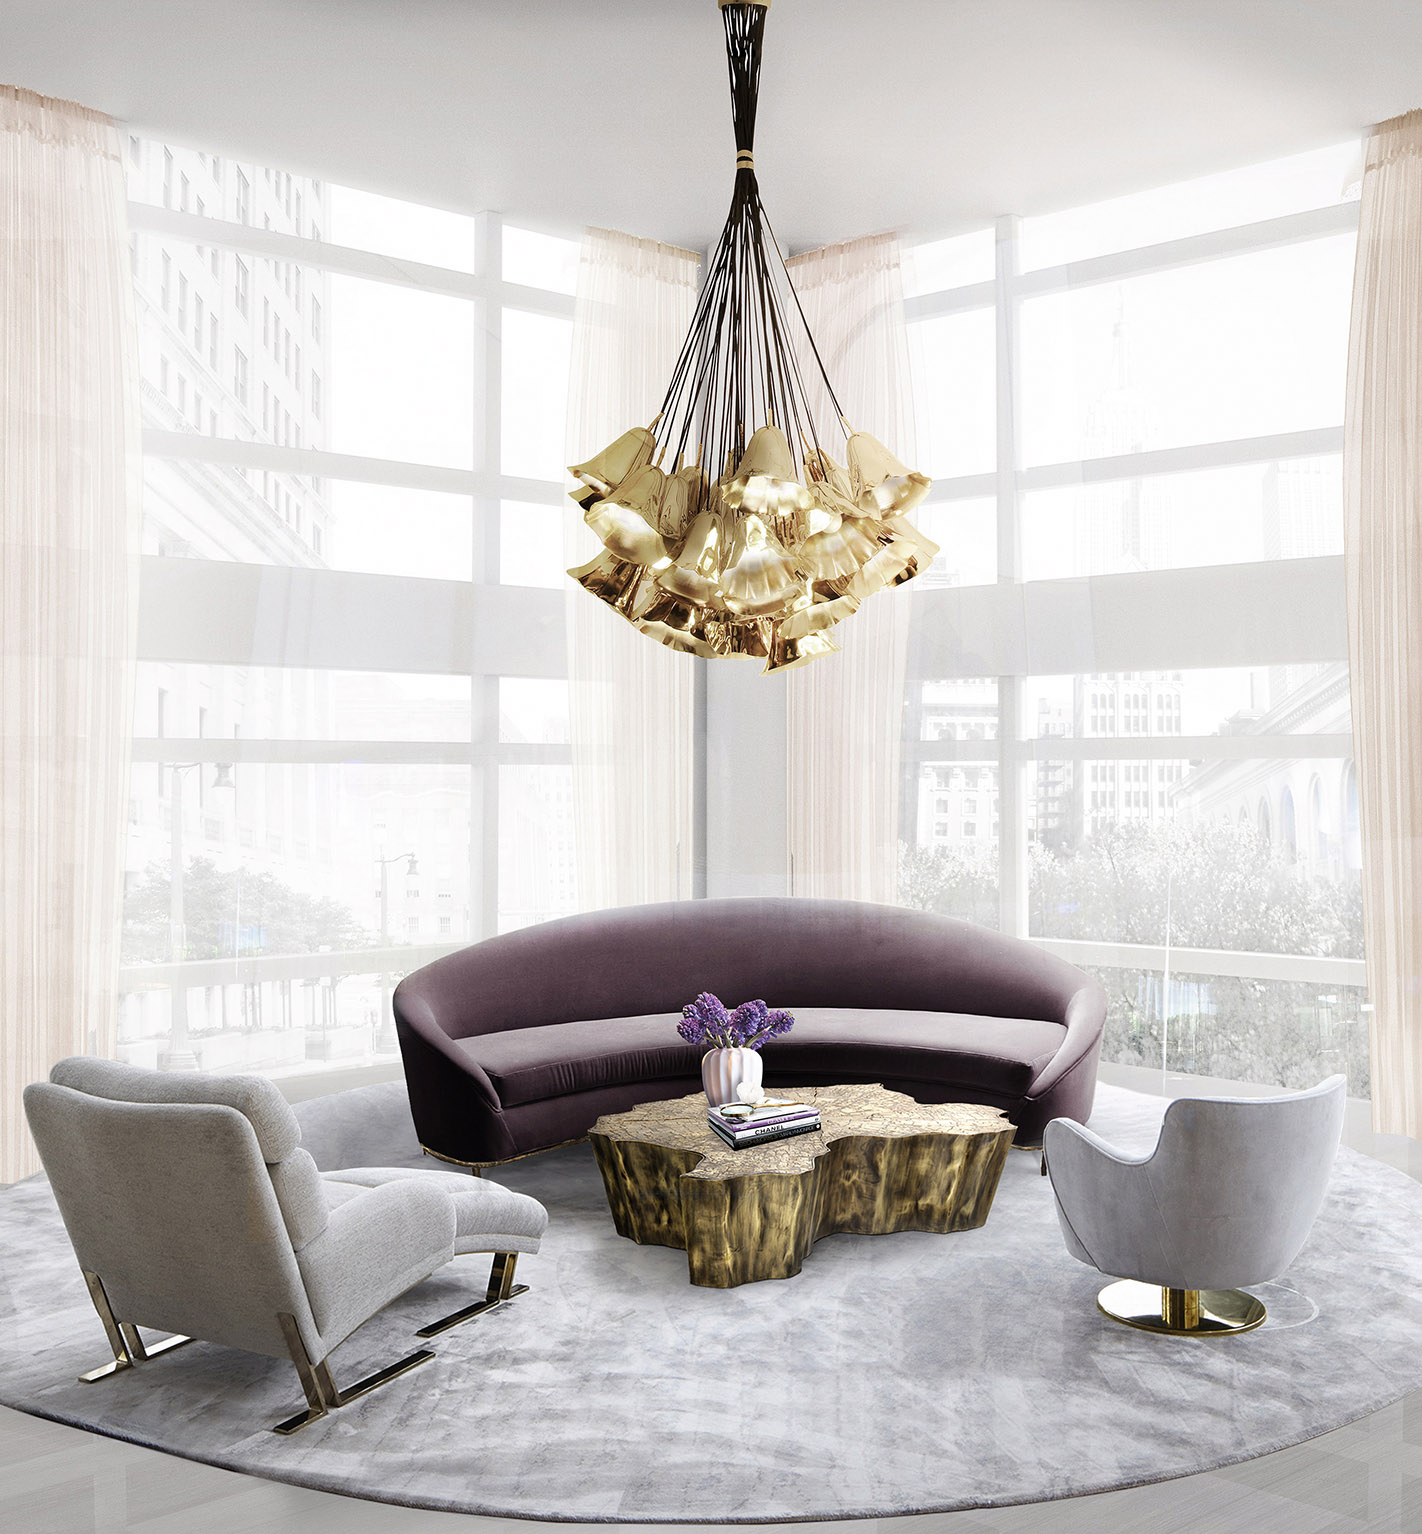 10 Ideas on How to Beautify your Living Room with Modern Sofas